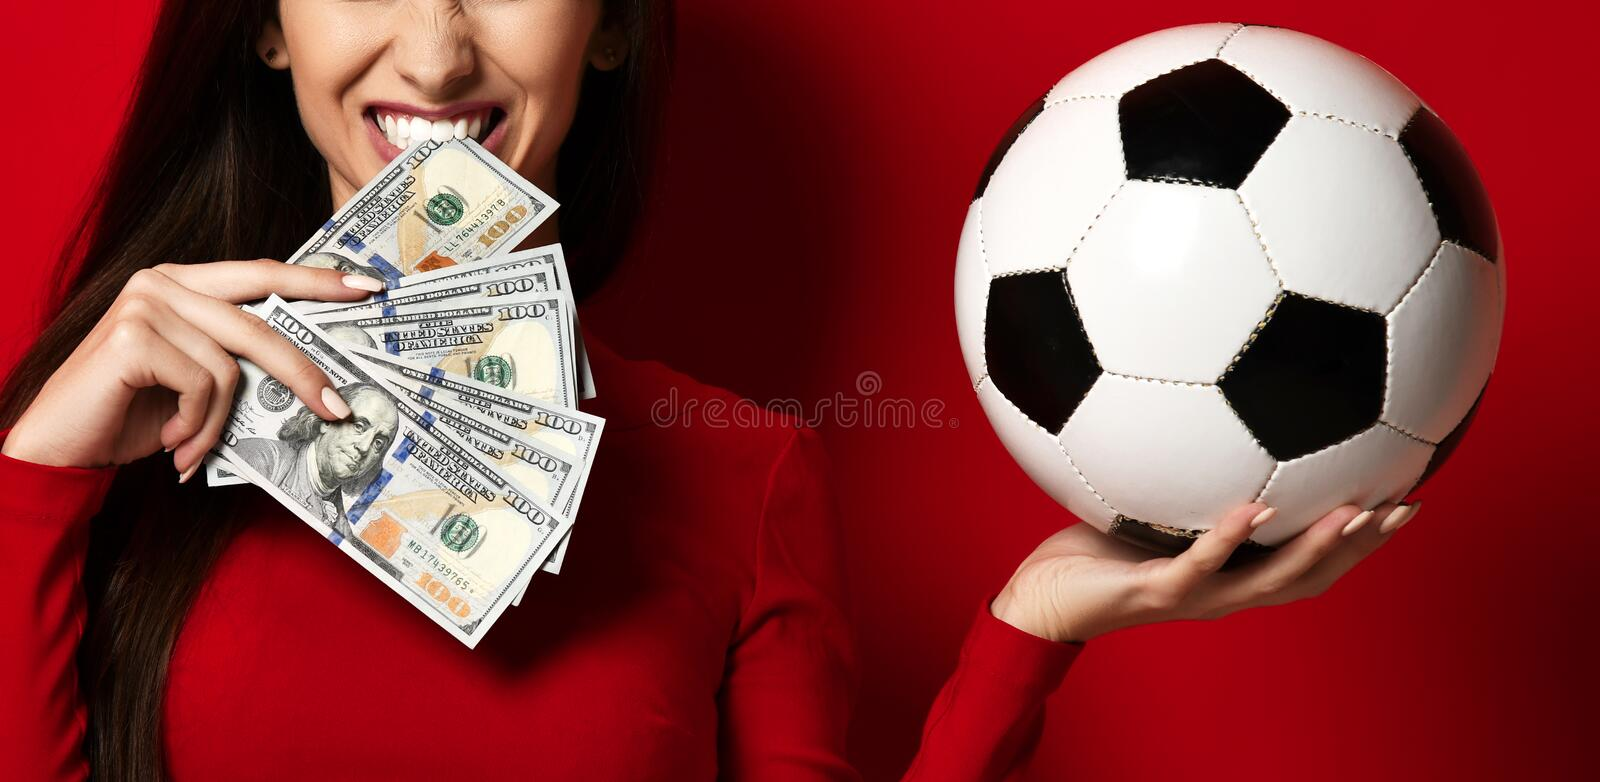 Young woman in red uniform hold soccer ball and dollar money for sports betting celebrating. Happy up with free text copy space on red background royalty free stock photo